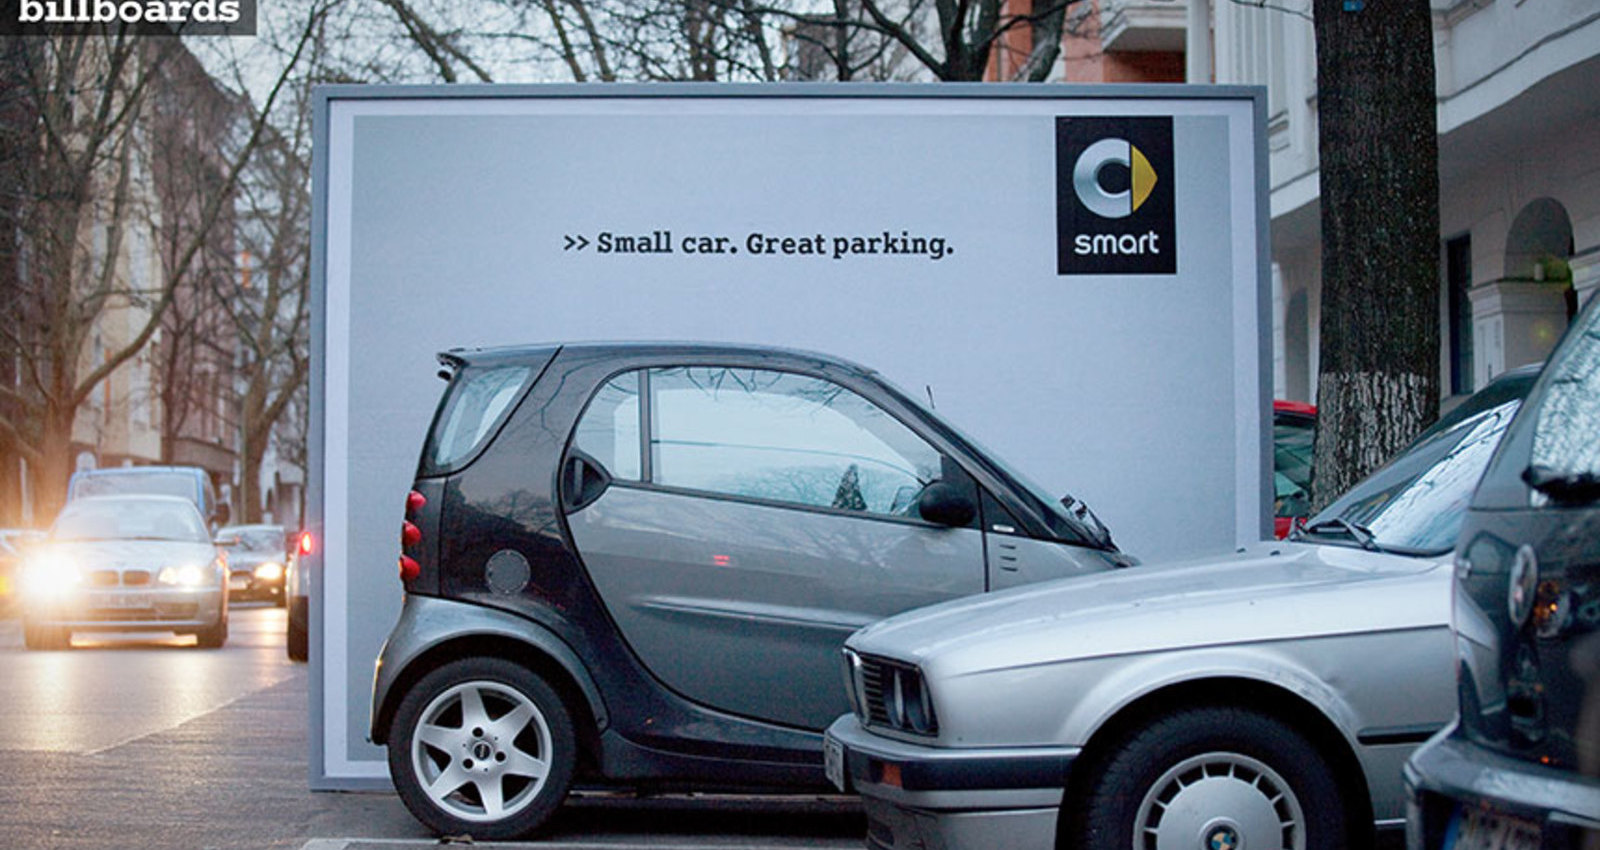 smart POP UP Billboards